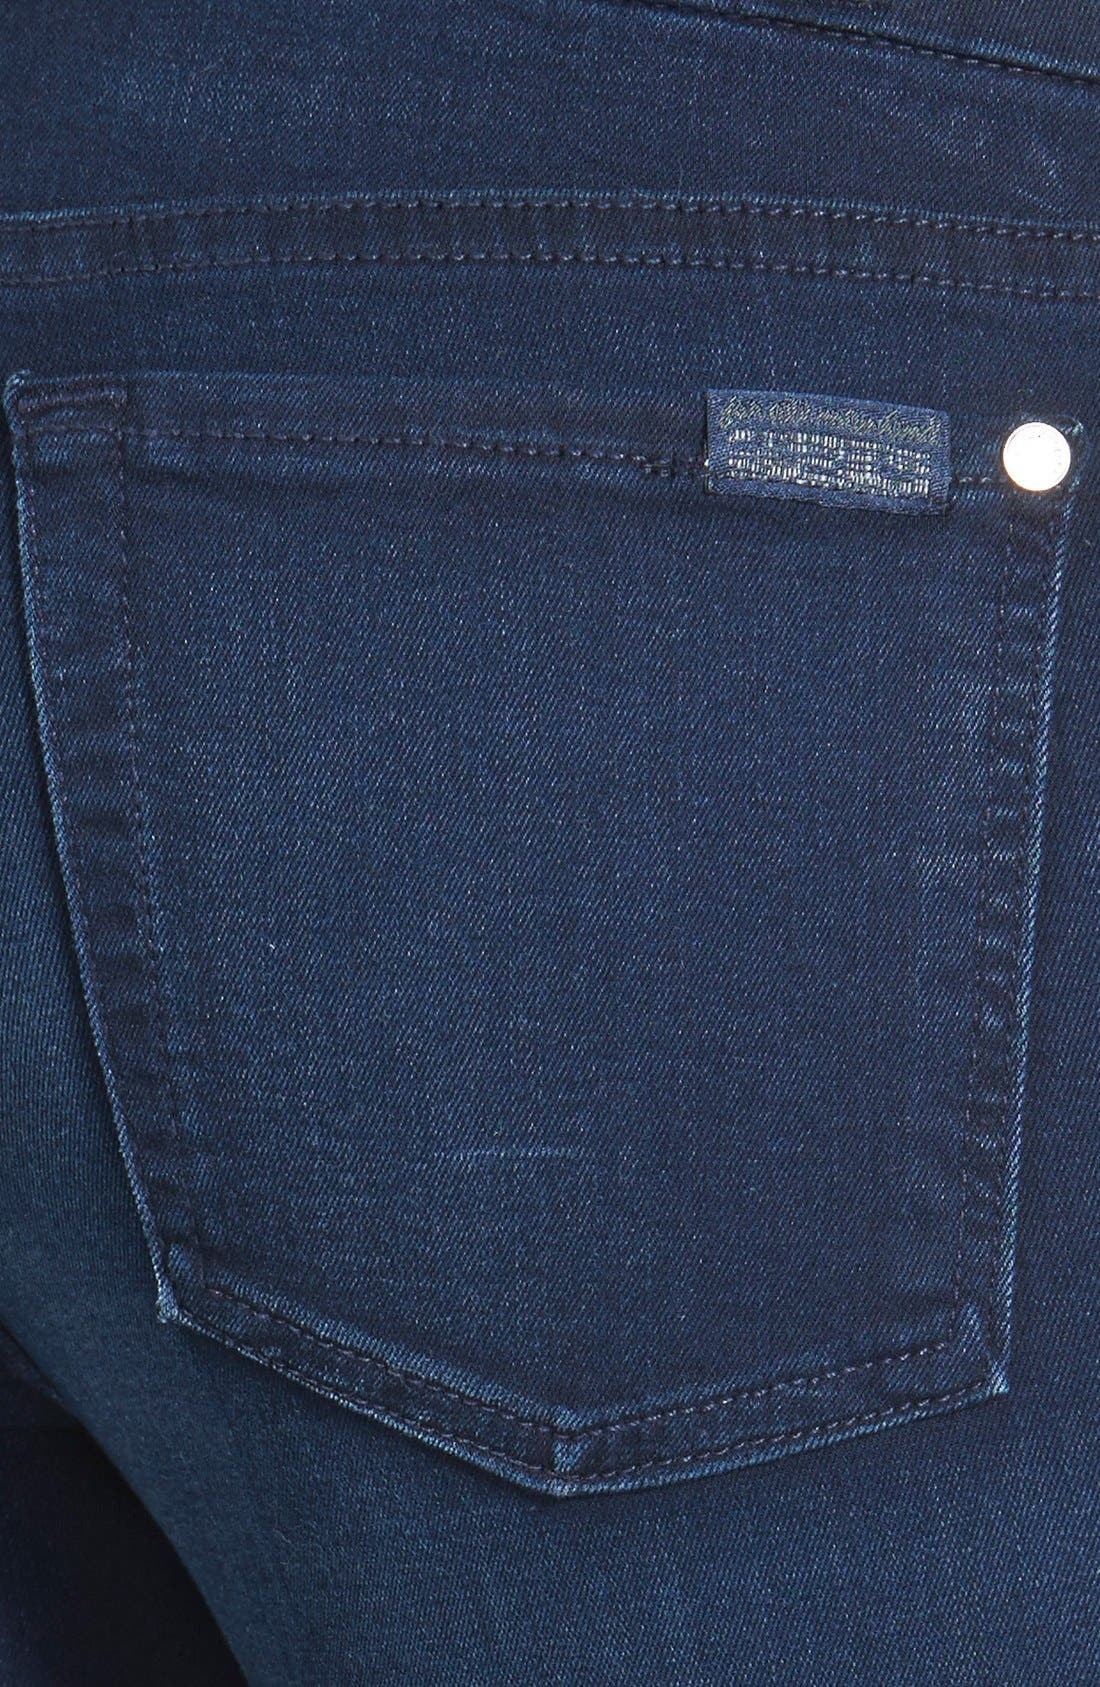 Alternate Image 3  - 7 For All Mankind® 'Slim Illusion Luxe' Mid Rise Skinny Jeans (Rich Blue)